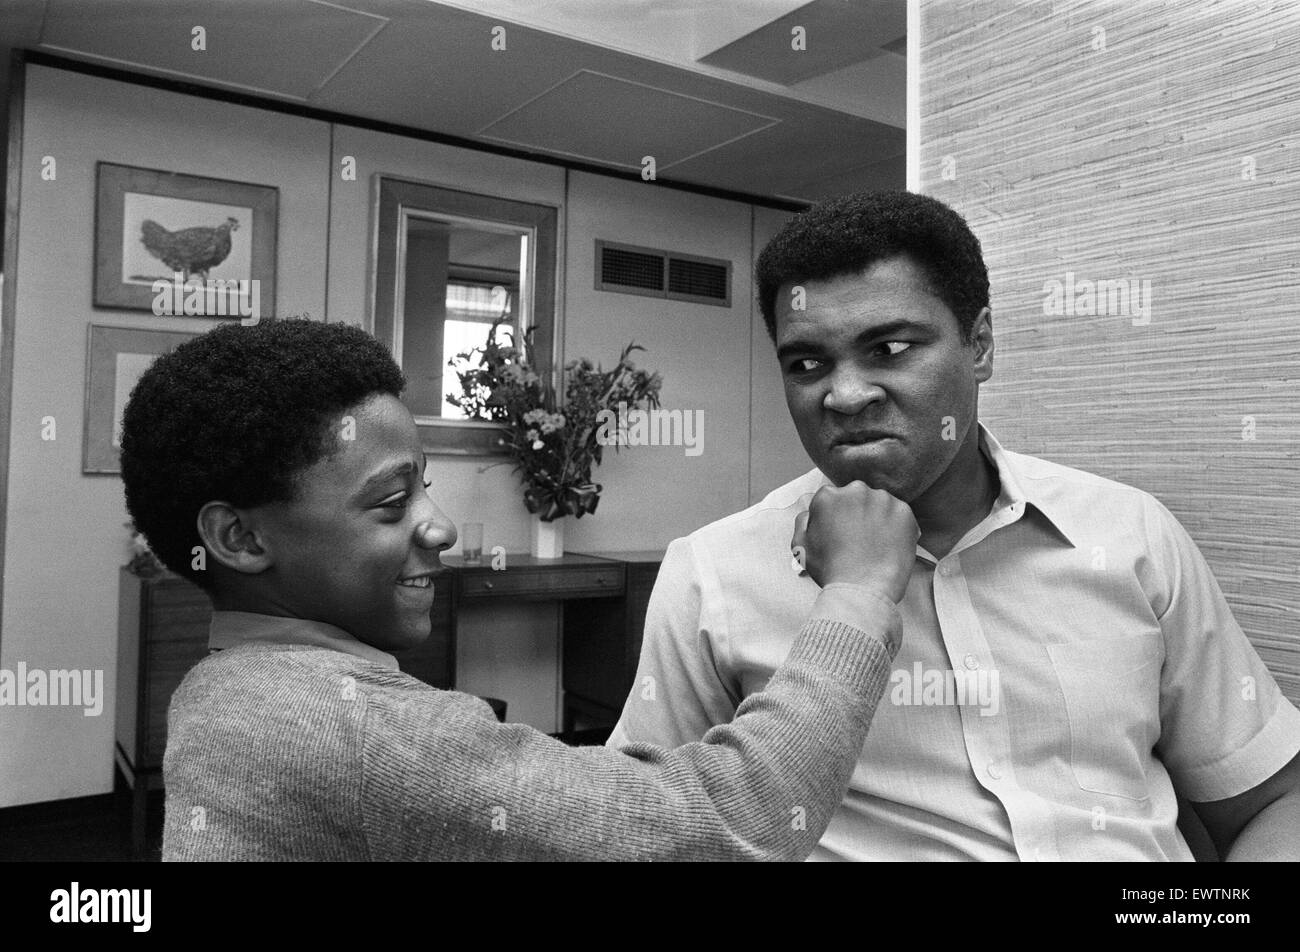 Muhammad Ali with a young fan at the Albany Hotel in Birmingham. 1st May 1984 - Stock Image